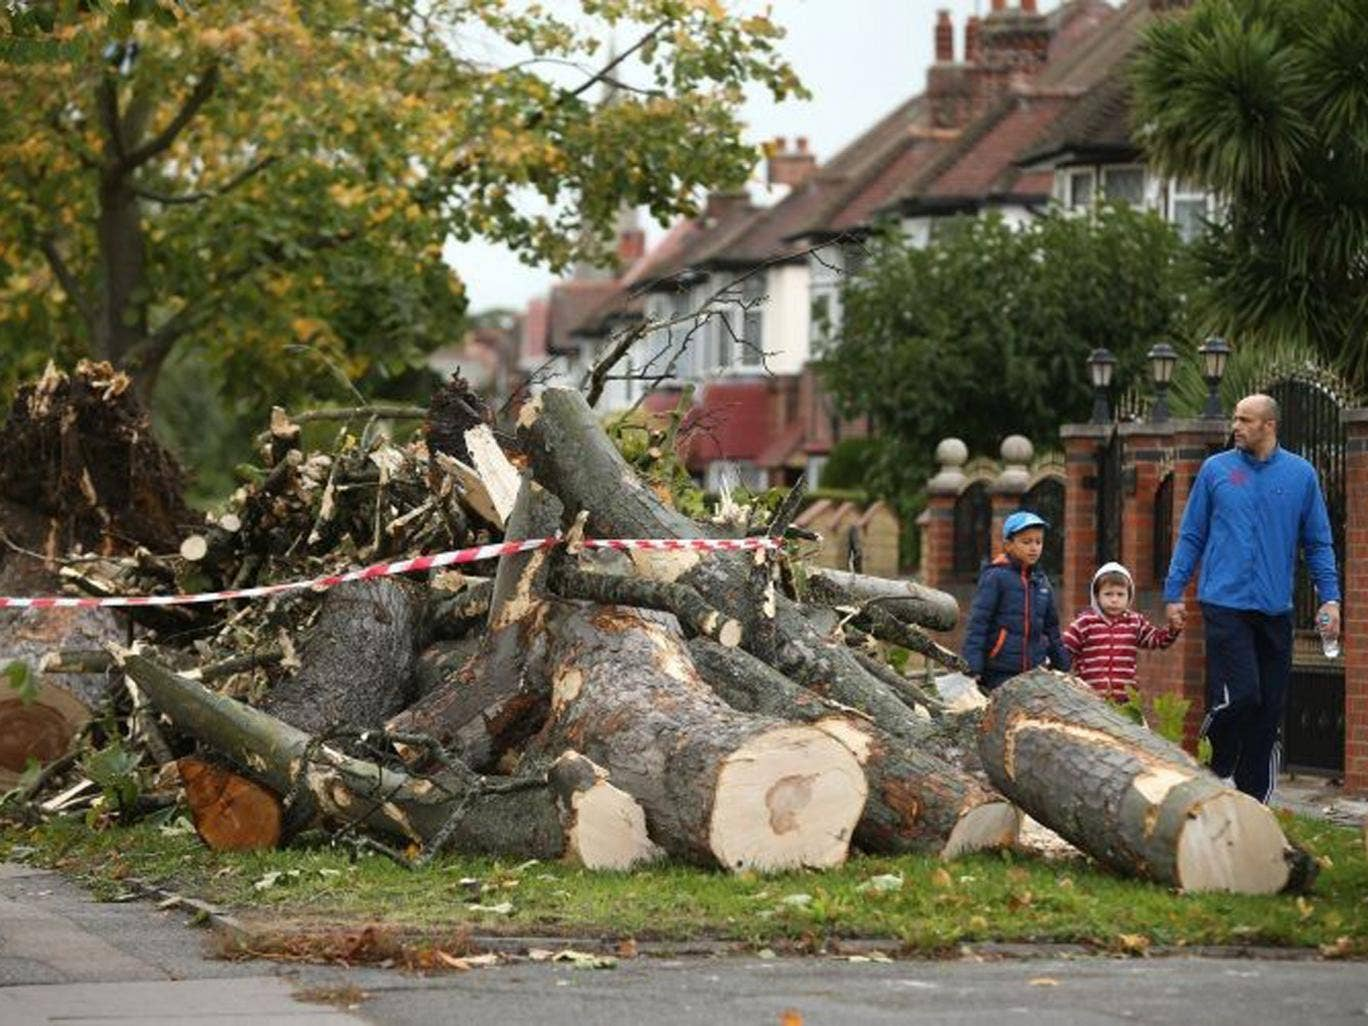 Last week's storm showed how much damage can be done by unforeseen events